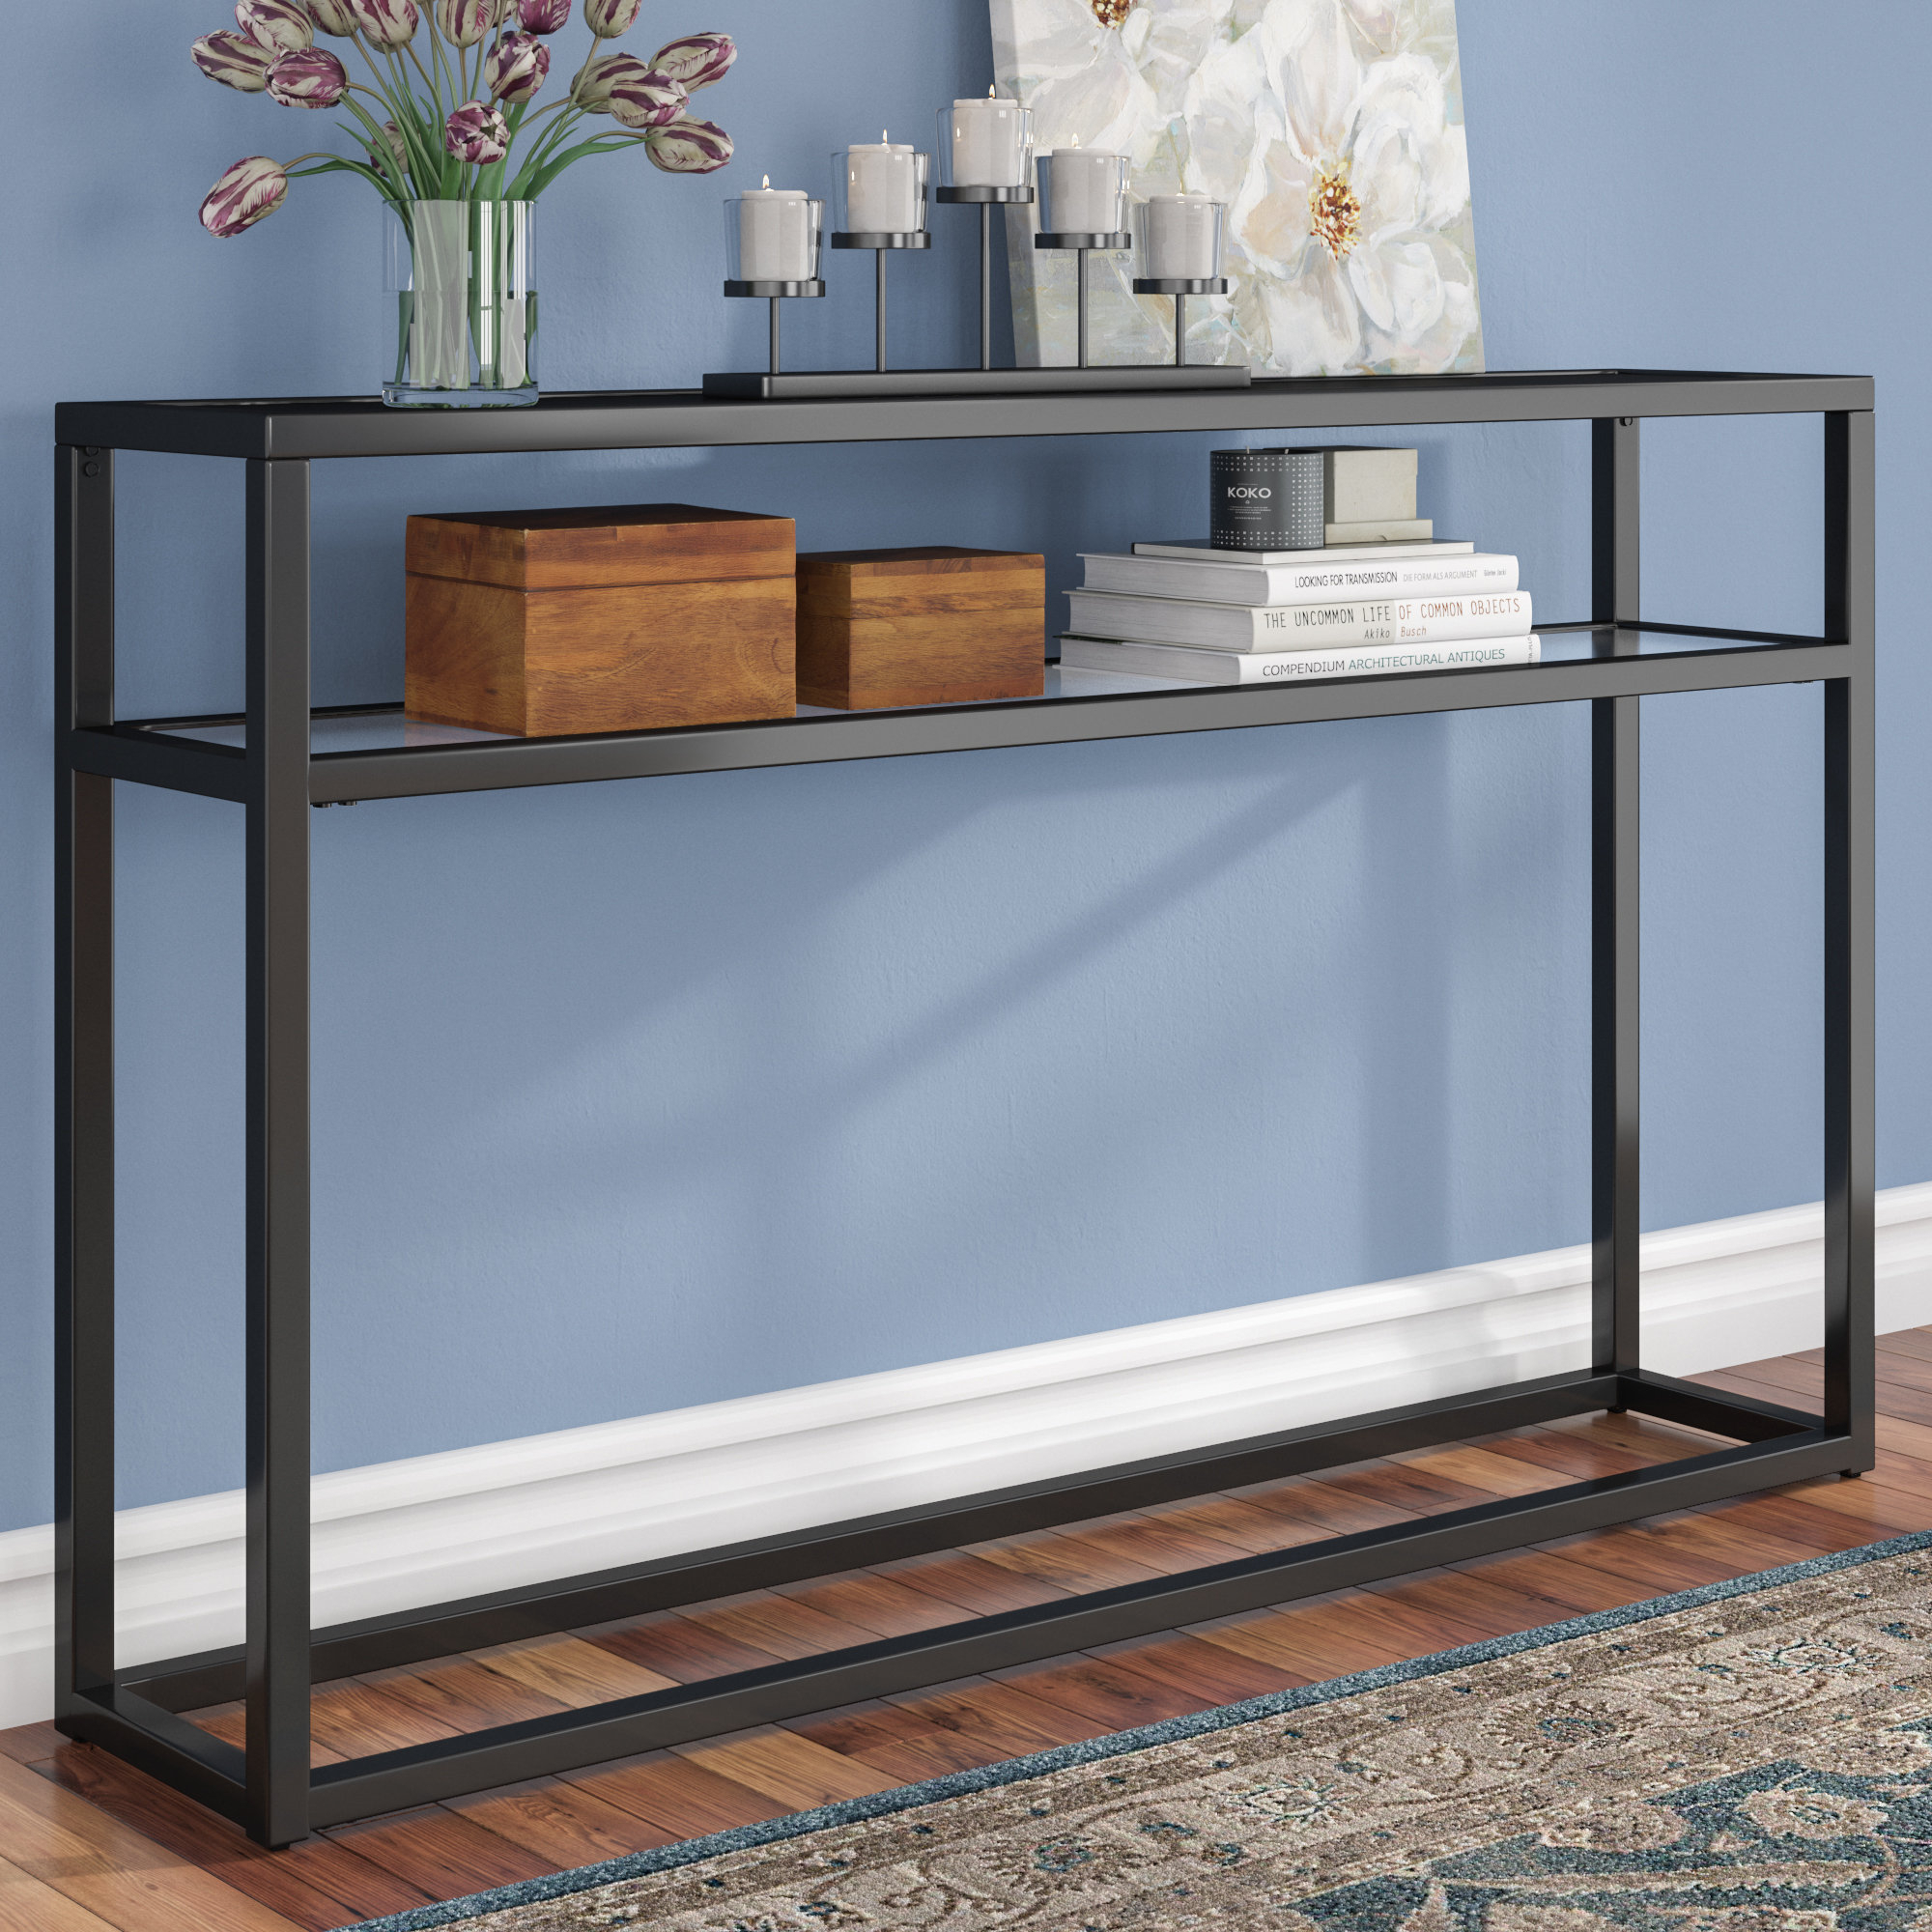 Narrow Console Tables You'll Love | Wayfair.ca Intended For Mix Patina Metal Frame Console Tables (Photo 23 of 30)